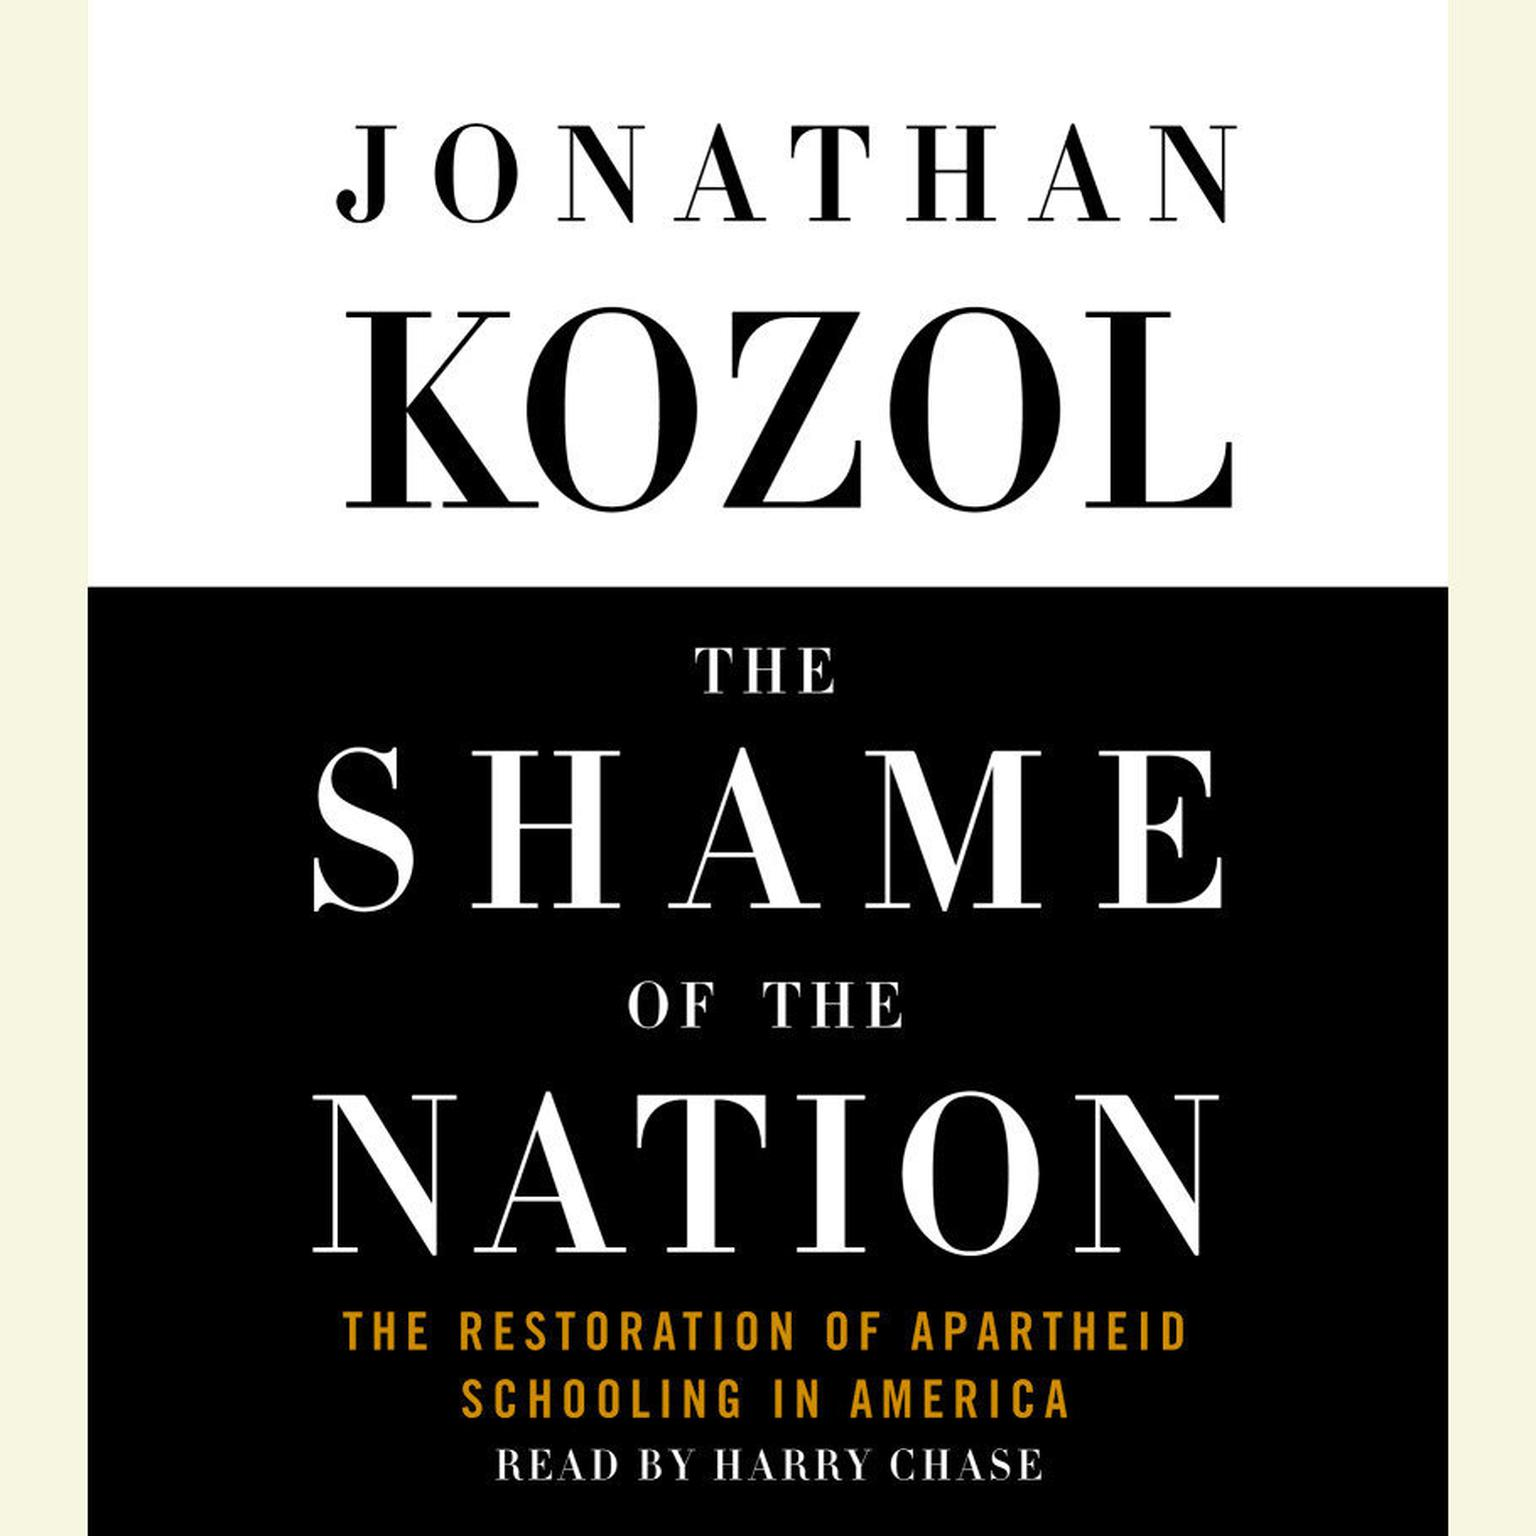 Printable The Shame of the Nation (Abridged): The Restoration of Apartheid Schooling in America Audiobook Cover Art